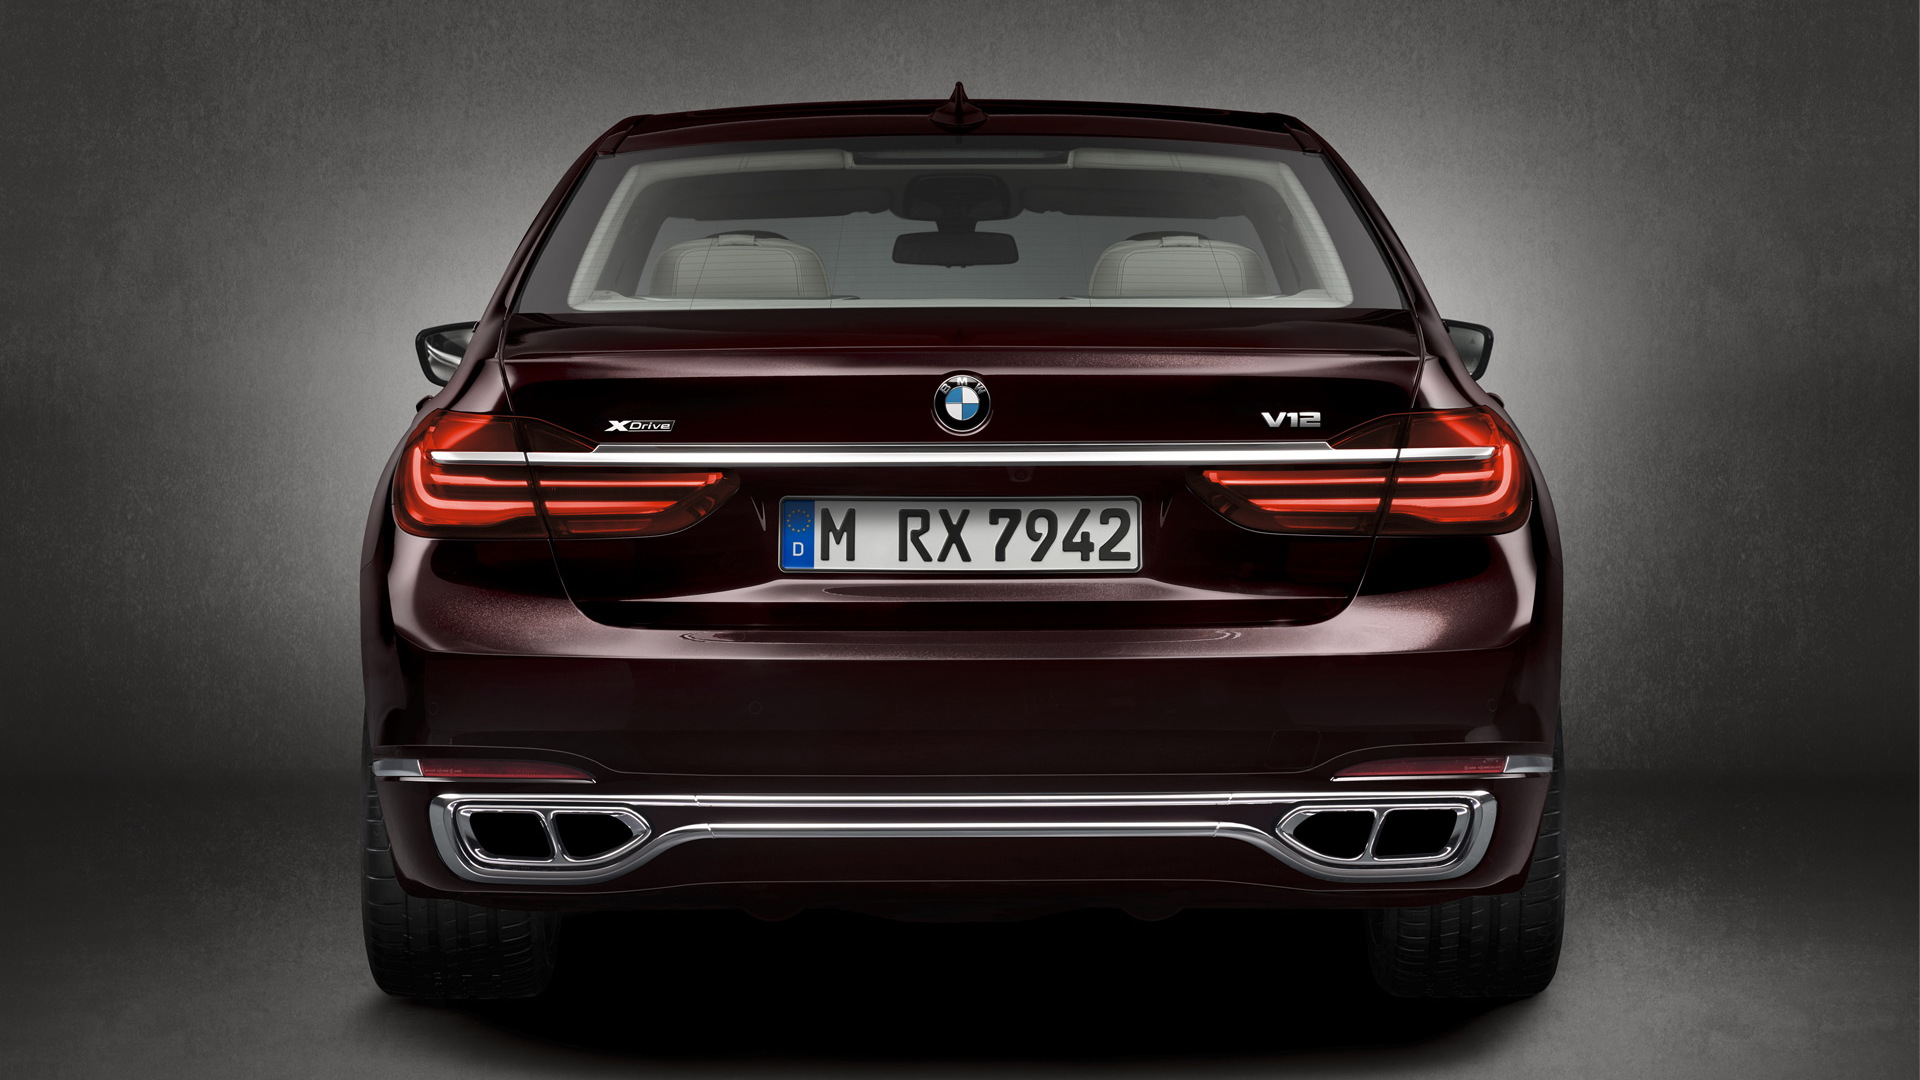 2017 BMW M760i xDrive V12 Excellence